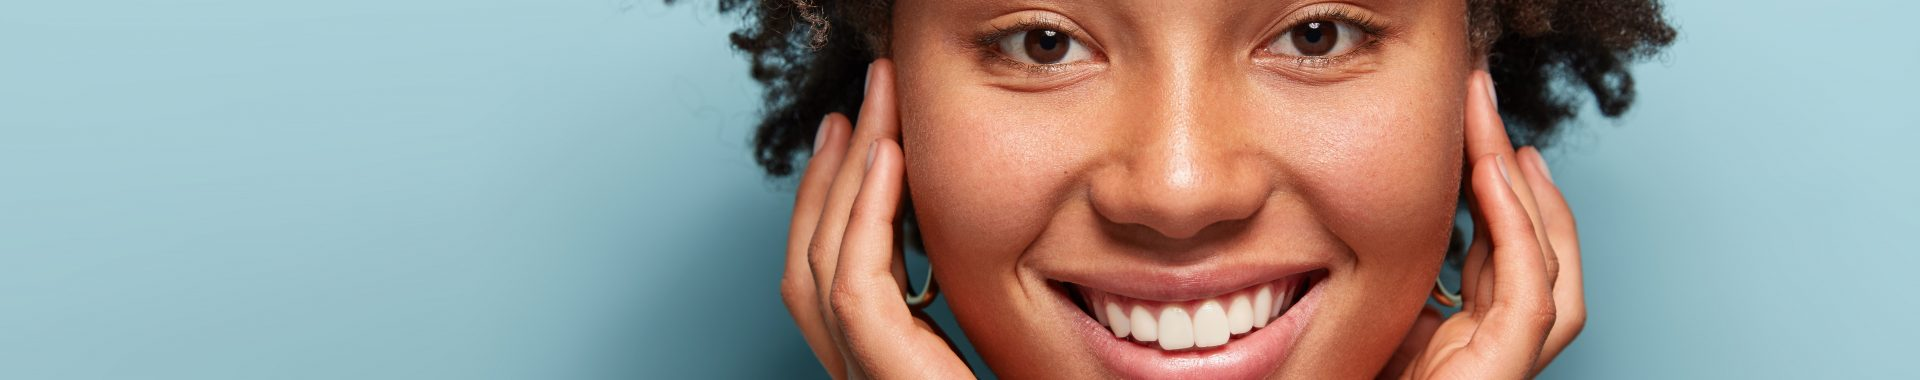 banner for face and skin treatments featuring a smiling black woman with beautiful, healthy skin